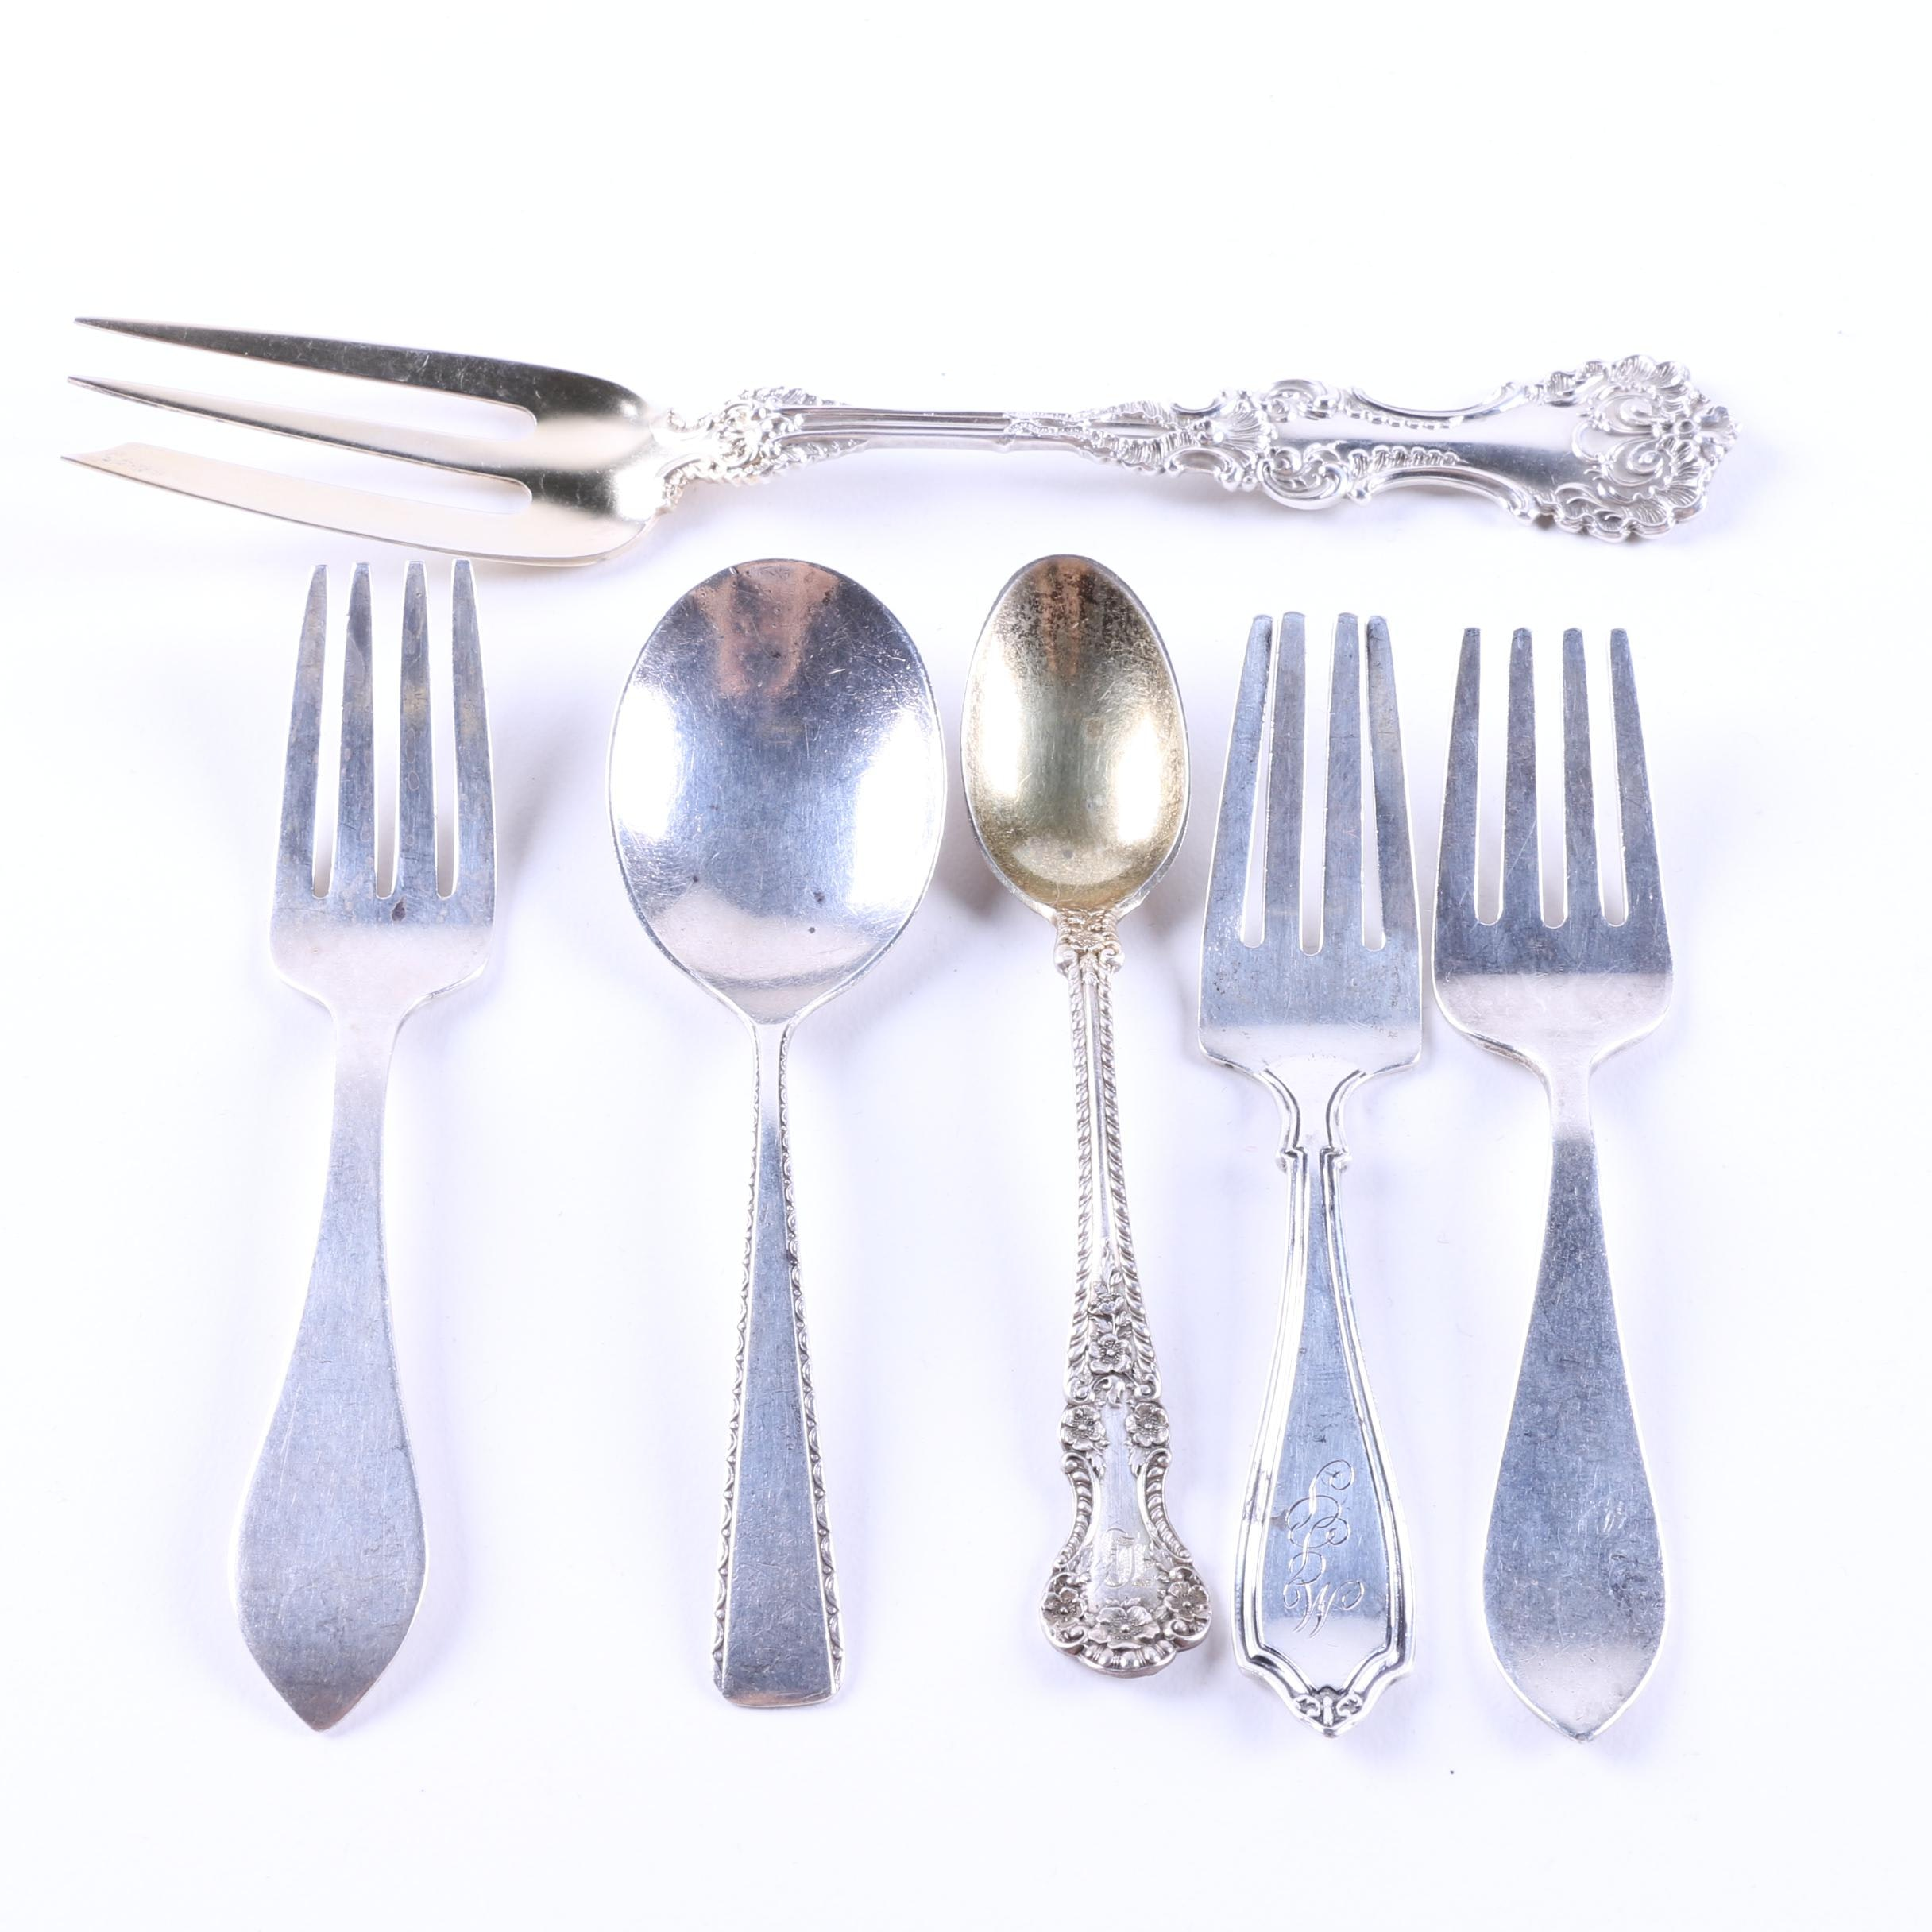 Assorted Sterling Silver Flatware Featuring Webster Co.